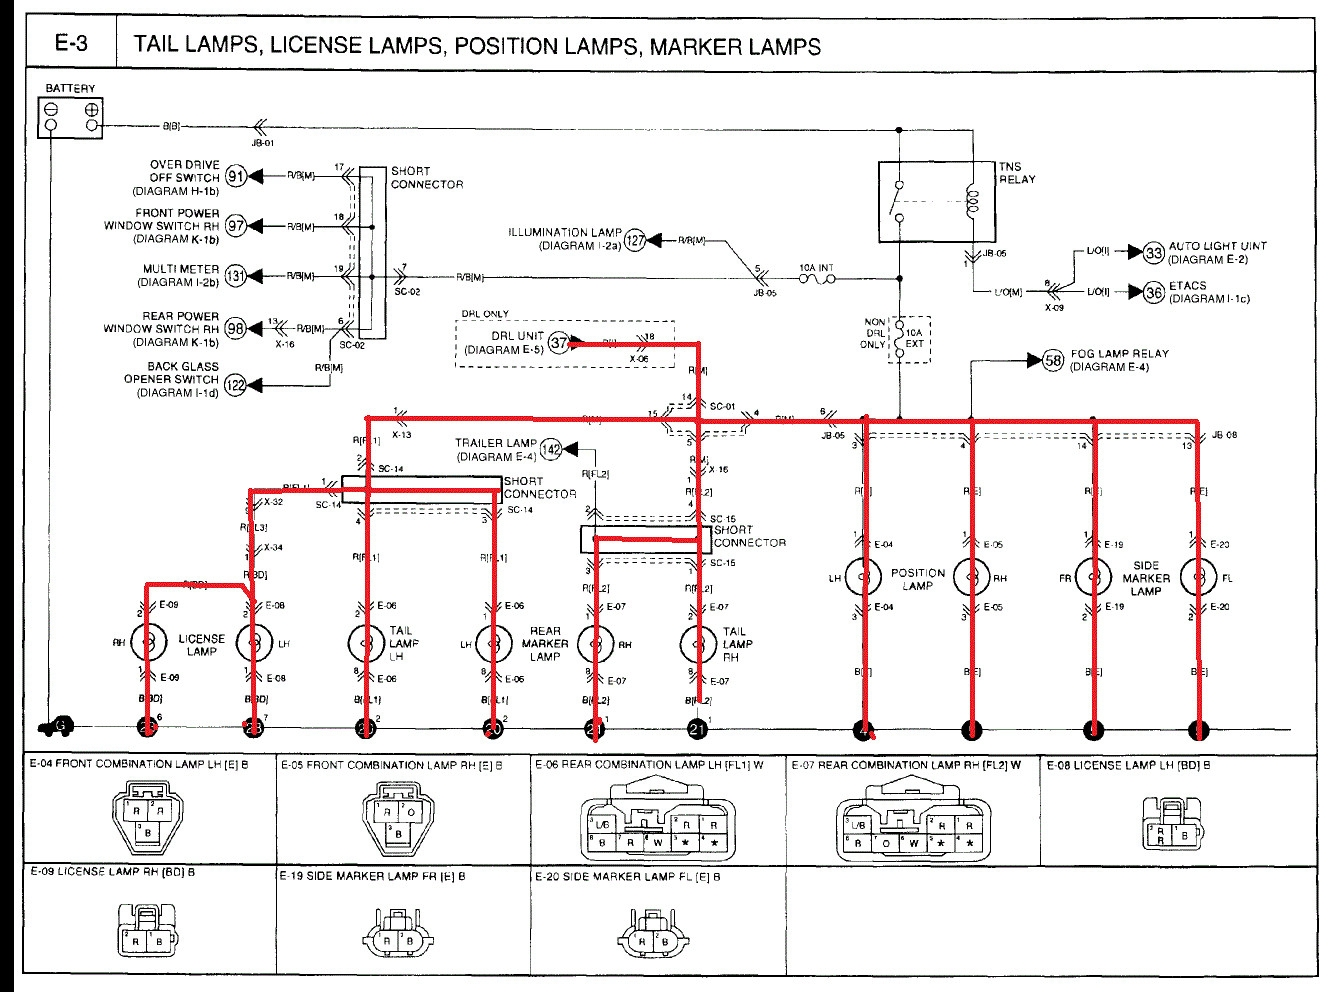 Diagram  2002 Kia Sportage Light Wiring Diagram Full Version Hd Quality Wiring Diagram